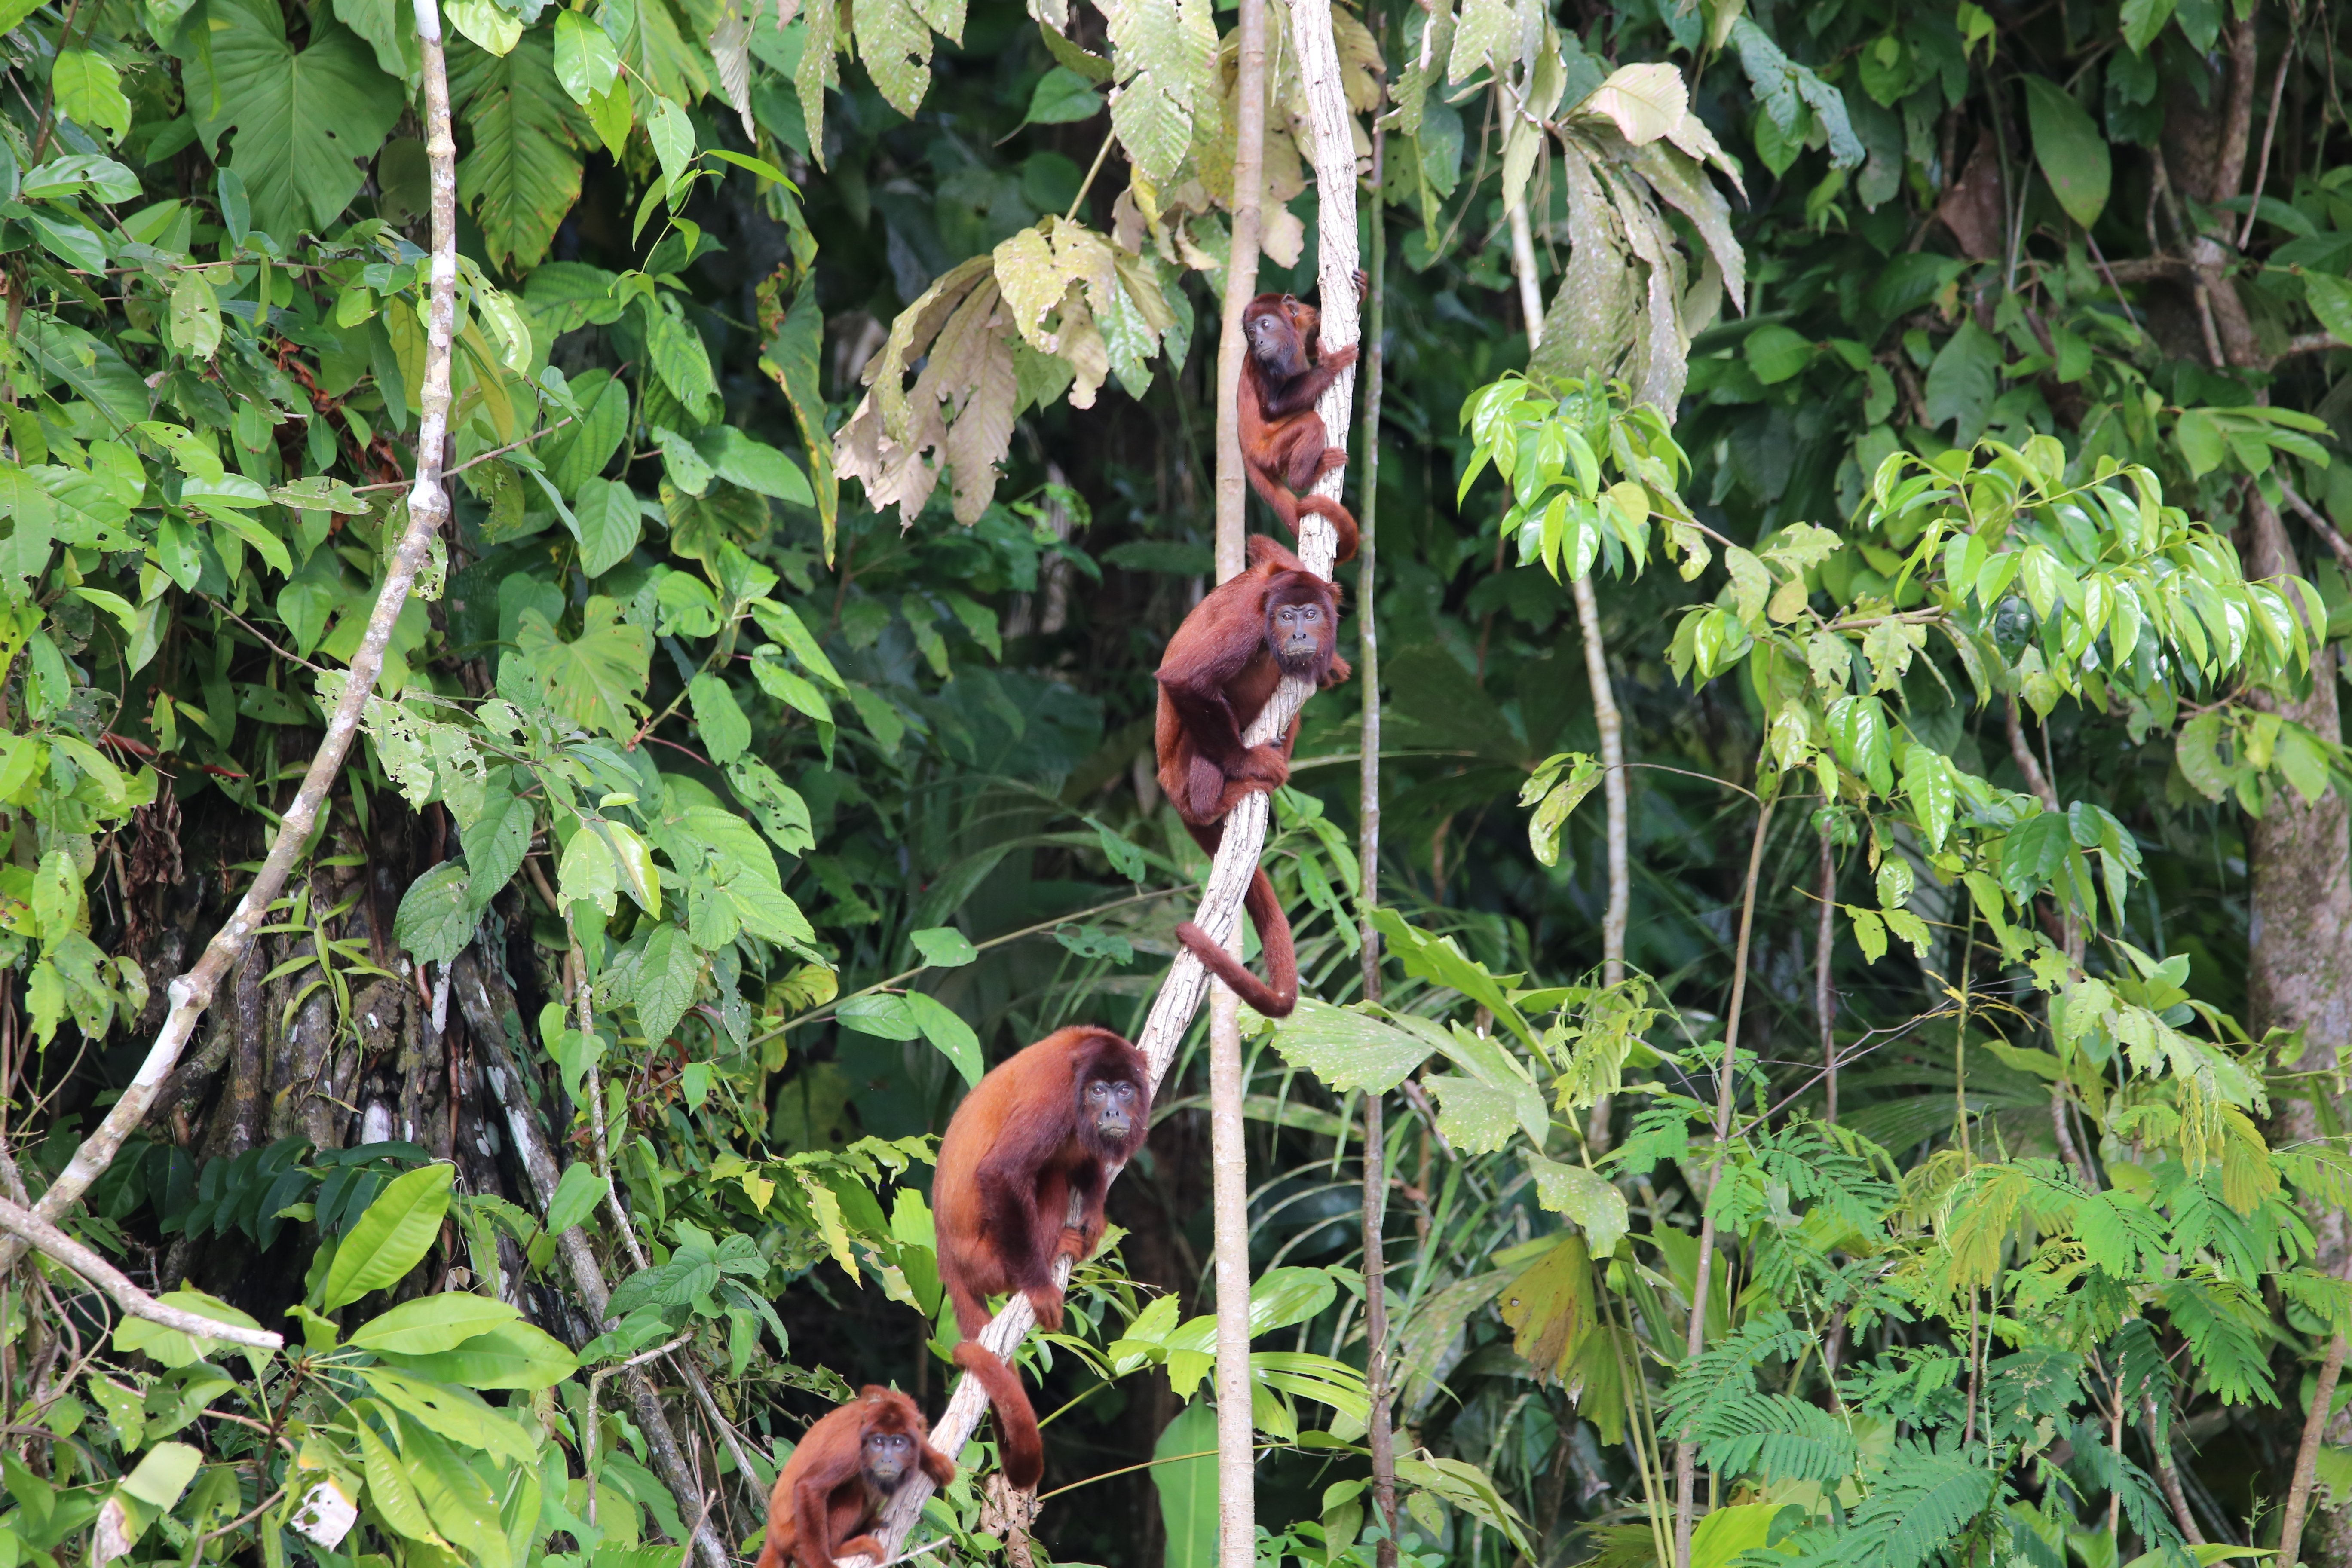 It is no surprise that Cocha Cashu attracts primatologists, as there are few places with as many monkey species. These are red howler monkeys.